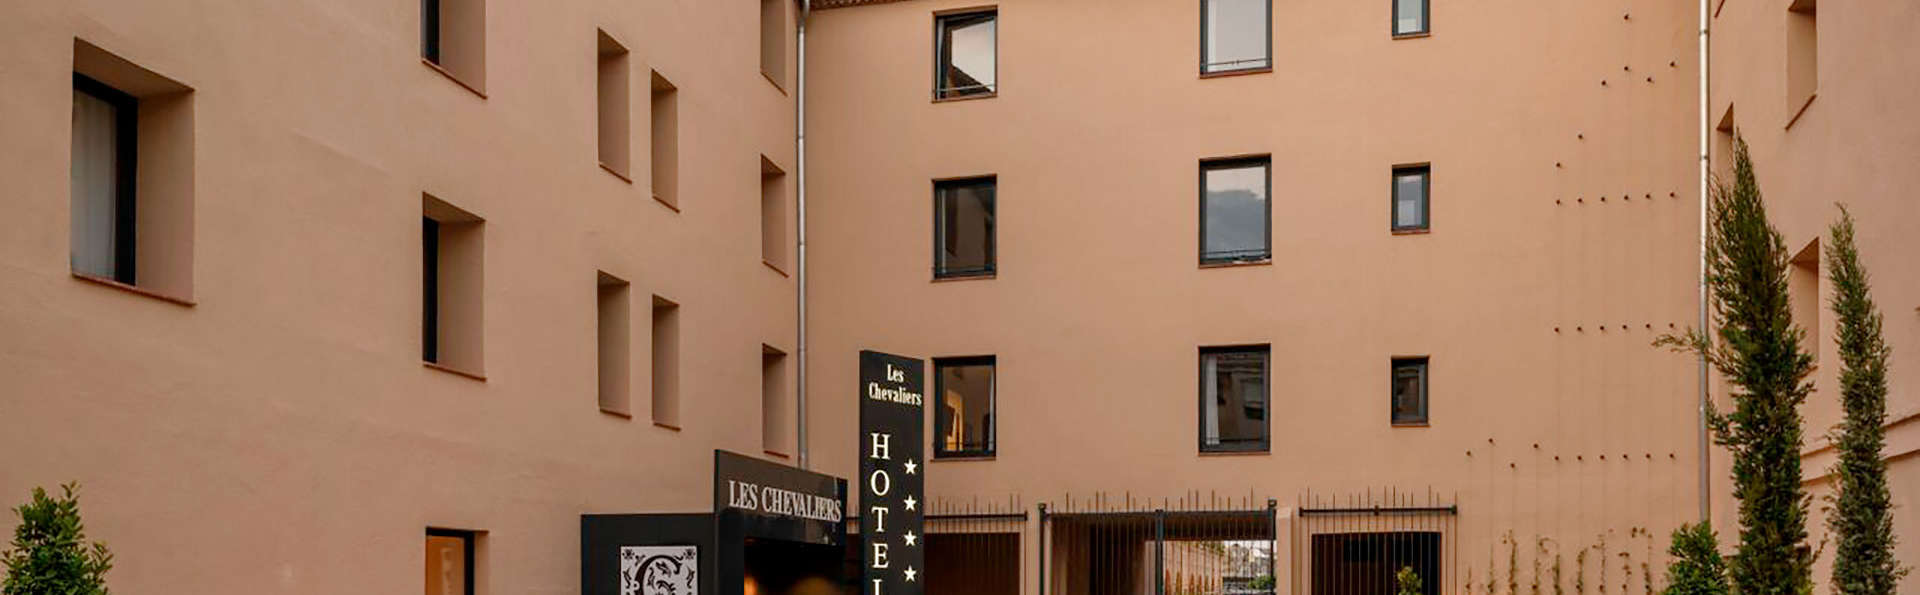 Hotel Les Chevaliers  - EDIT_FRONT_02.jpg